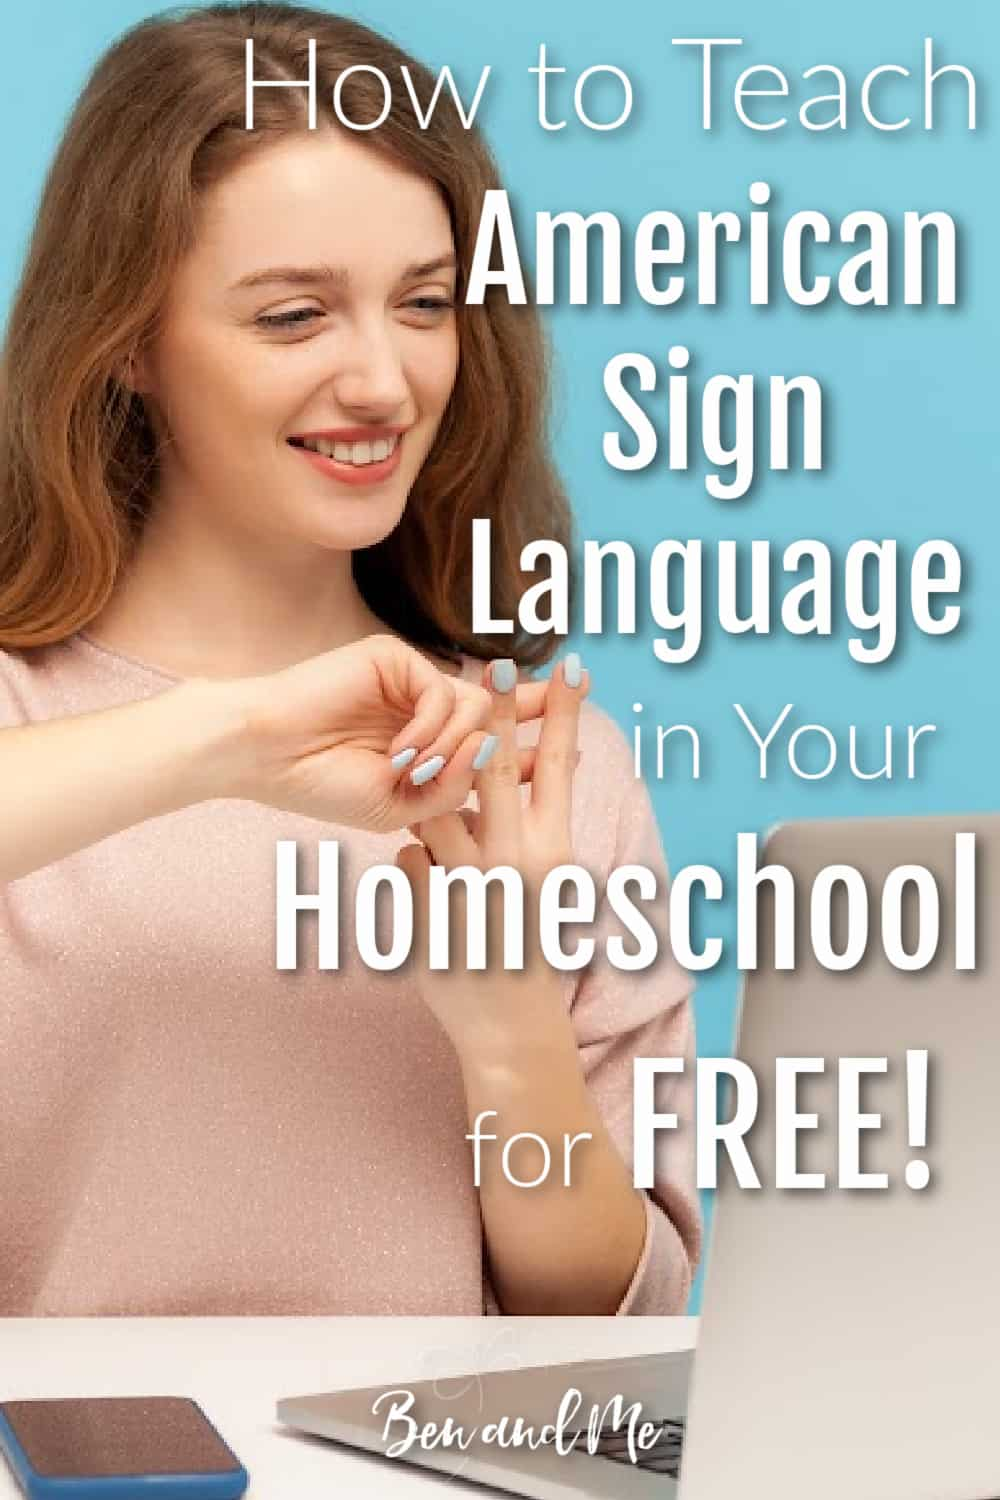 If you would like to teach American Sign Language in your homeschool, these tips and free resources will help you get started. #homeschool #learnasl #americansignlanguage #homeschoolforfree